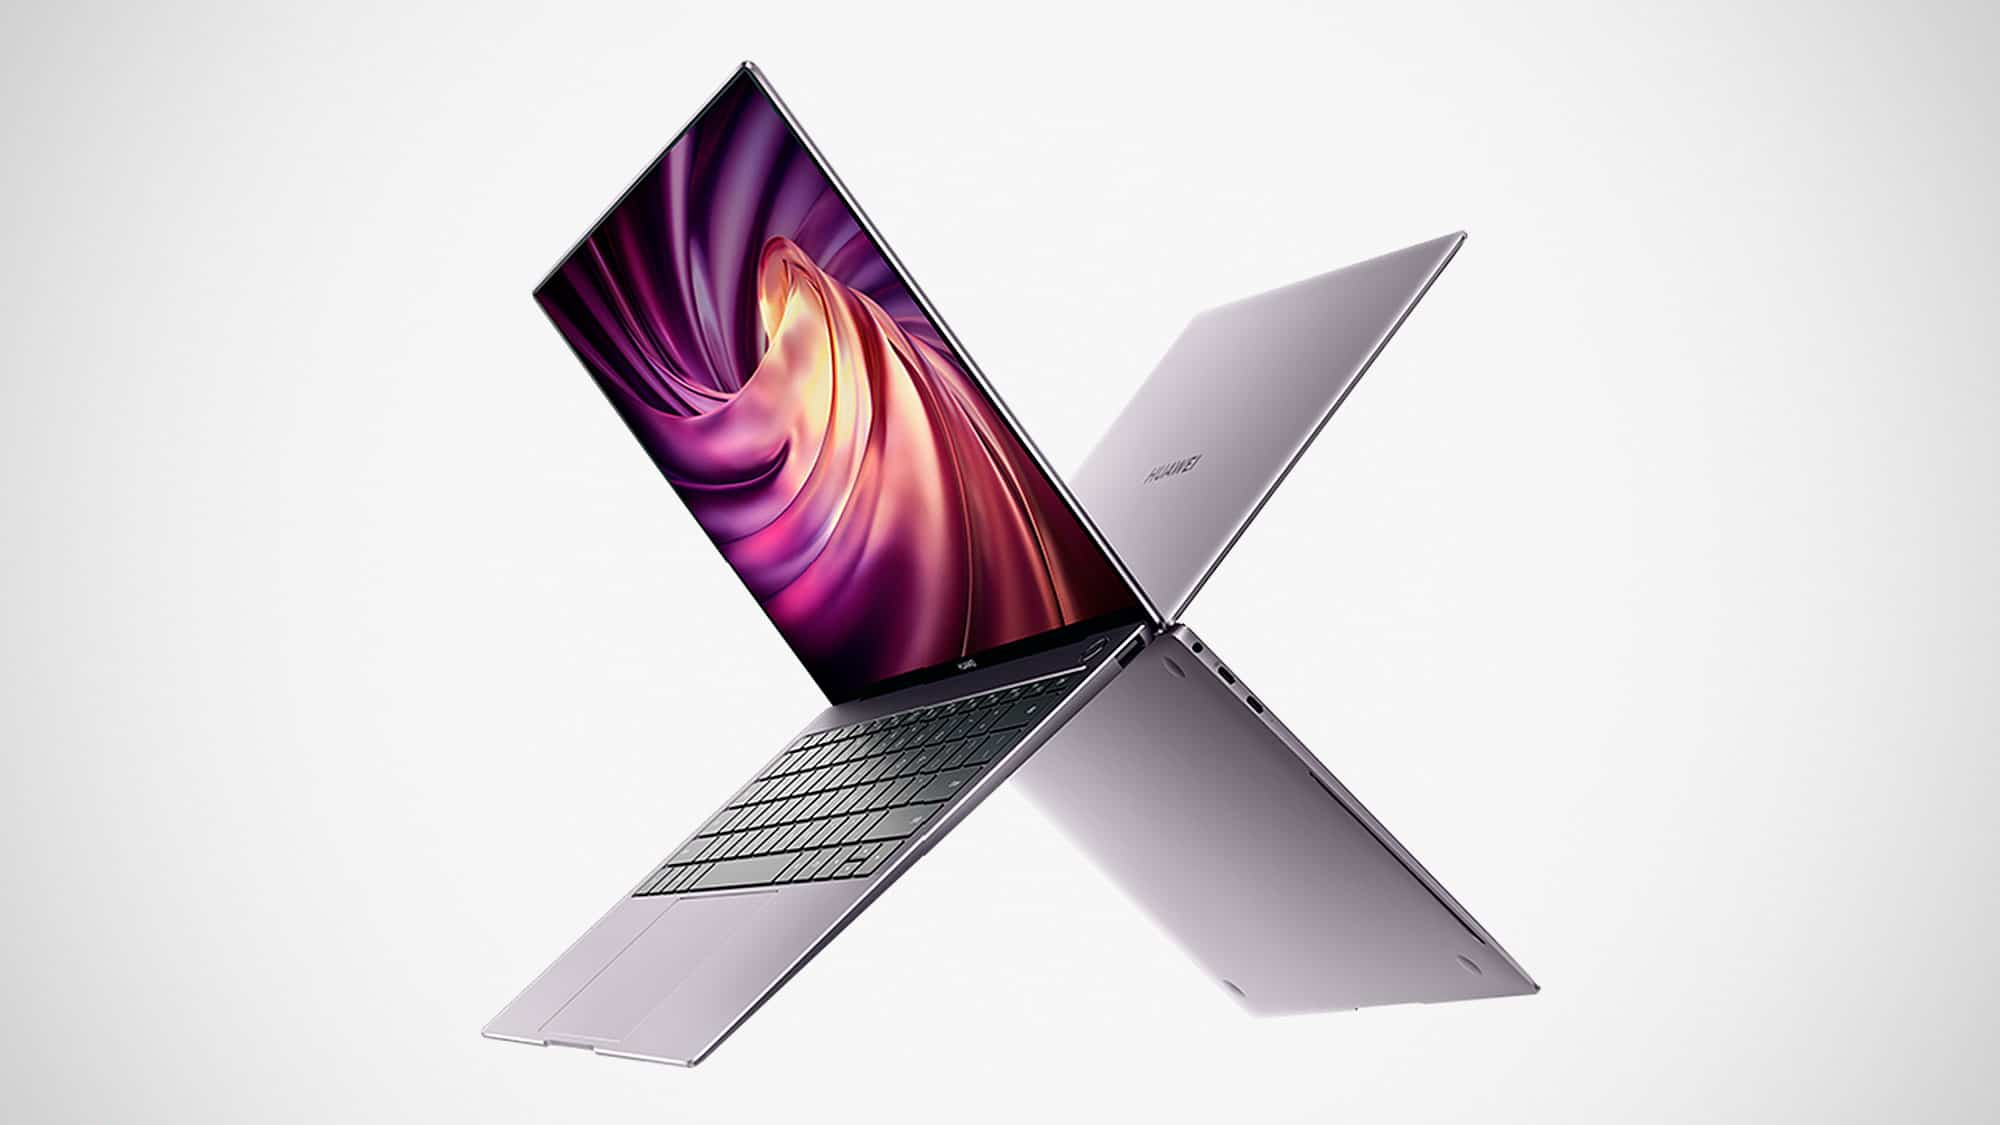 Huawei releases 3 linux based laptops: MateBook 13, MateBook 14, and MateBook X Pro